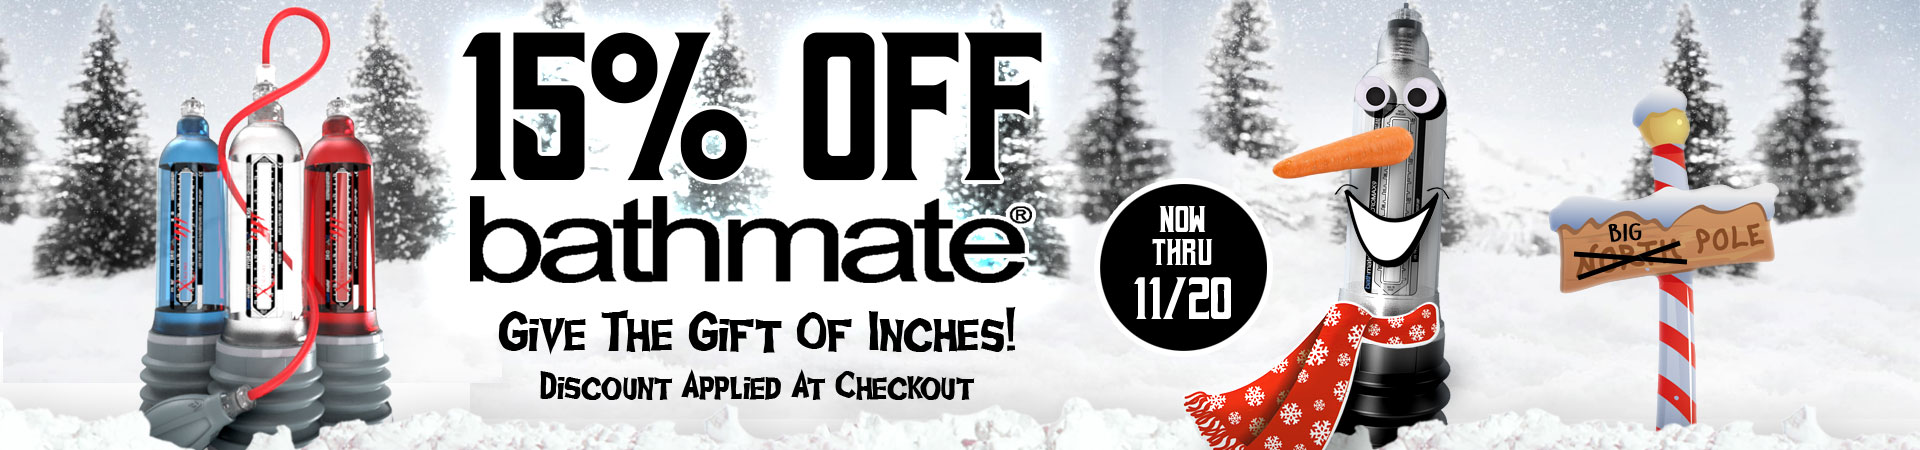 SheVibe Is PUMPED For The Holidays! Save 15% On All Hydromax By Bathmate Pumps And Give The Gift Of Inches! Sale Ends November 20th.